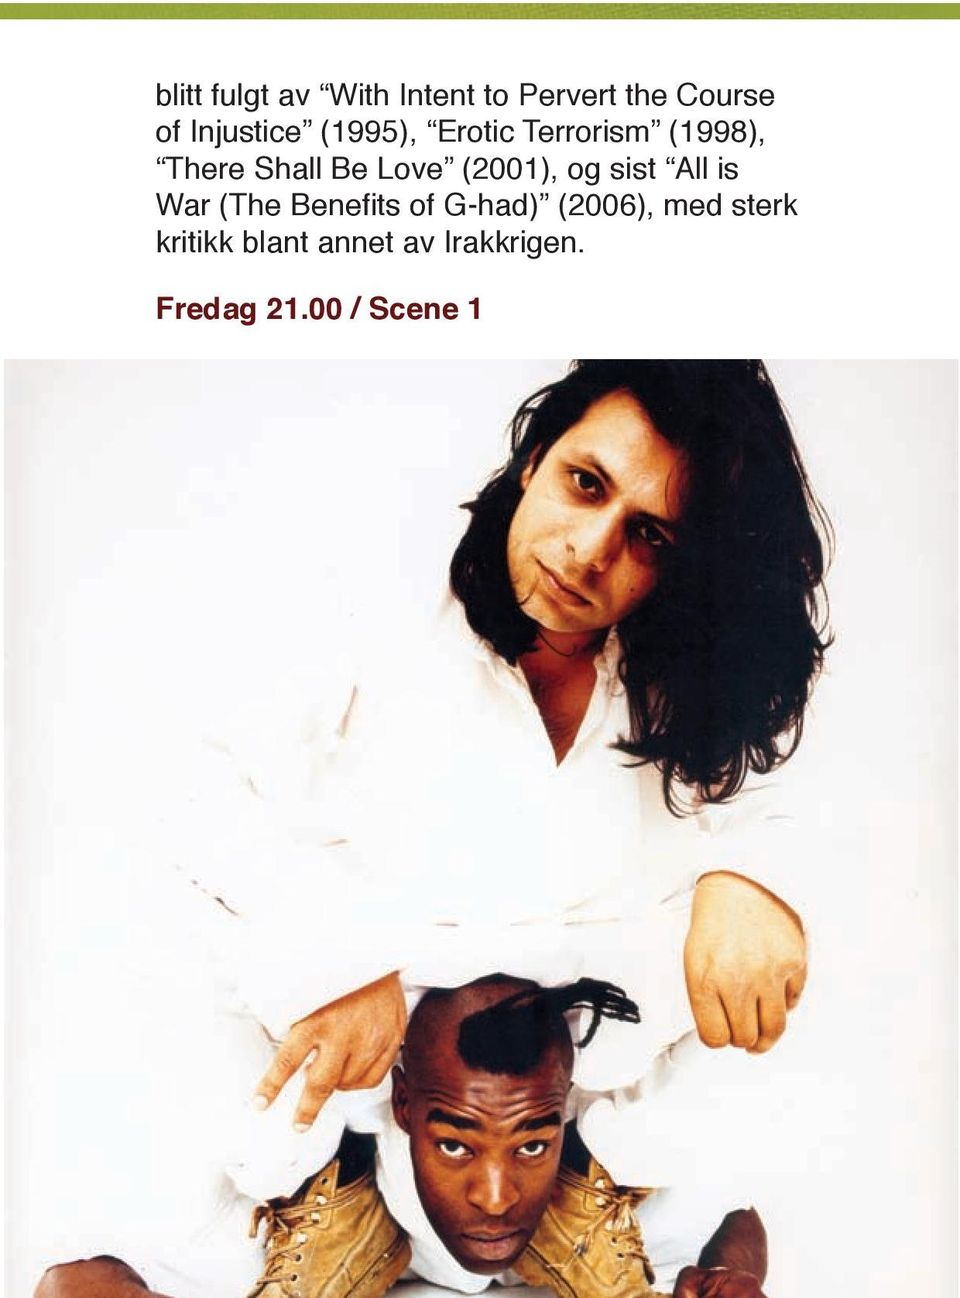 Love (2001), og sist All is War (The Benefits of G-had)